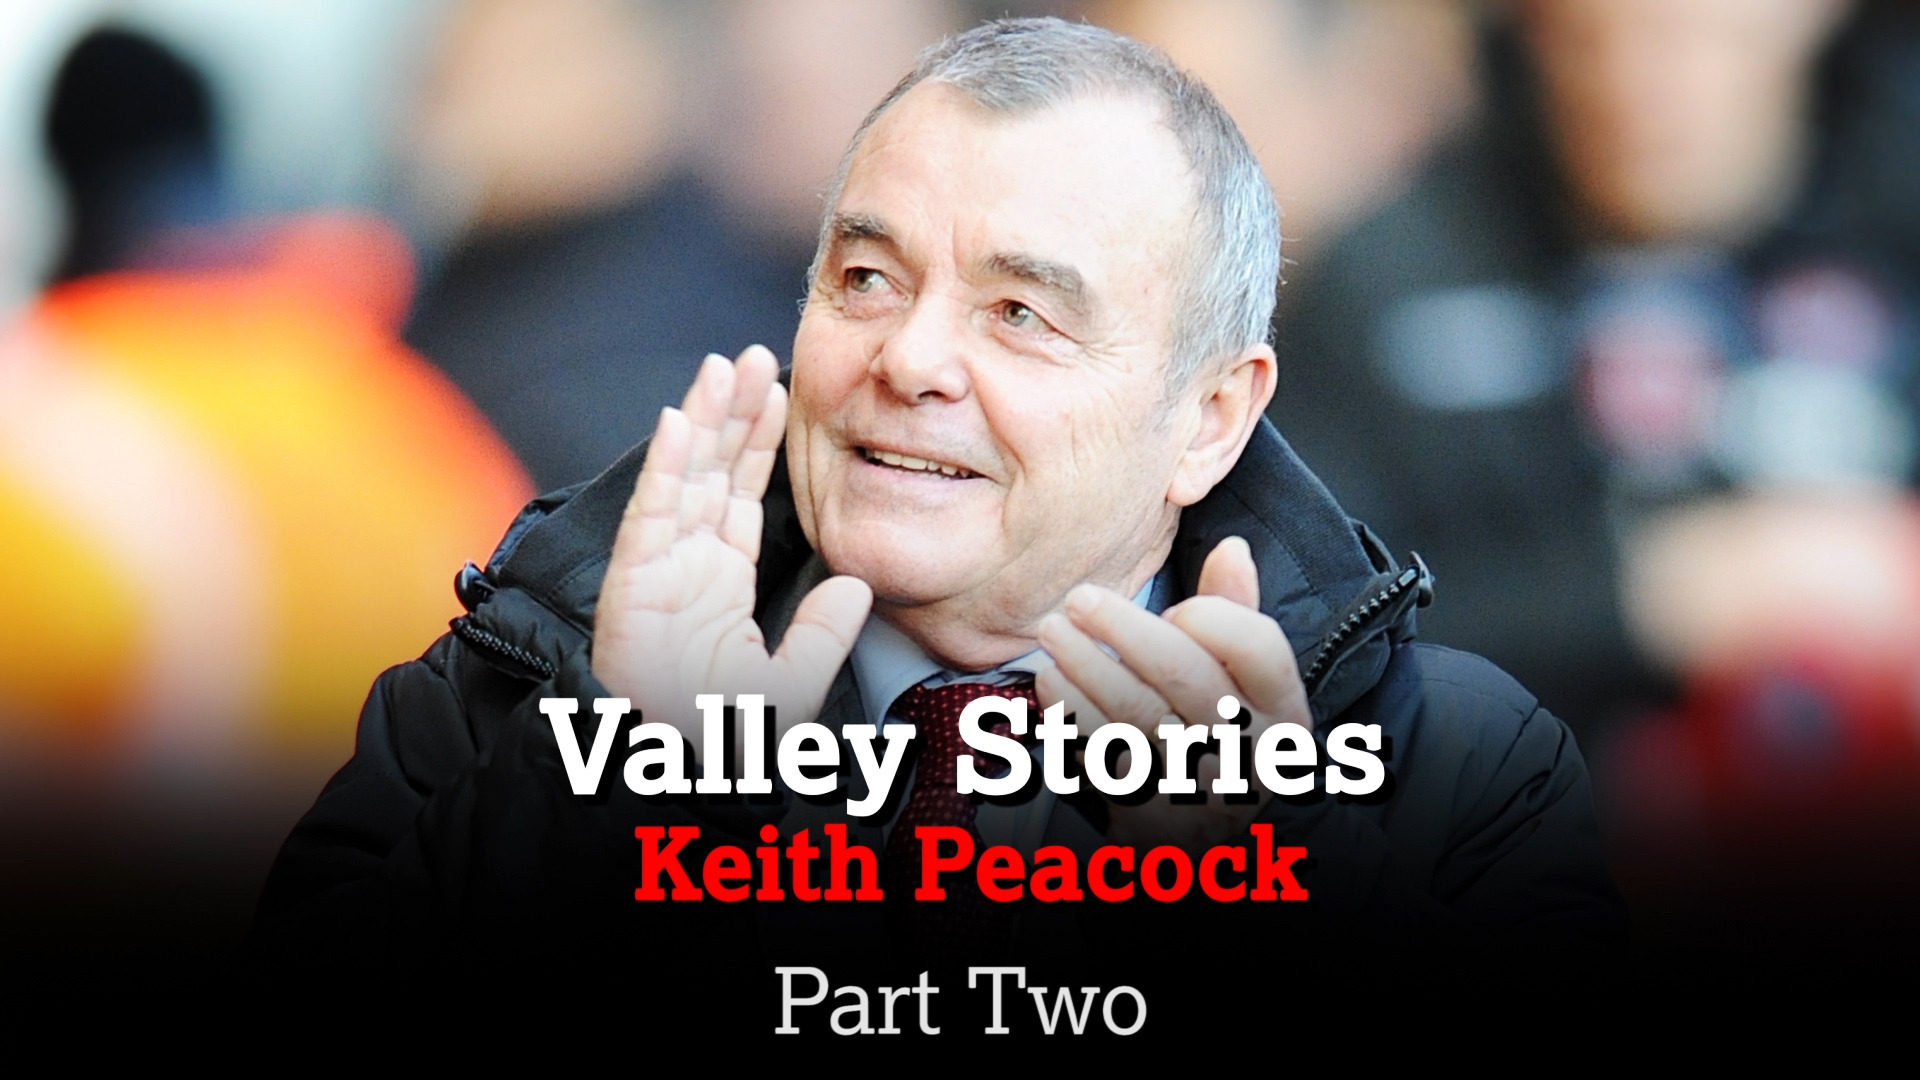 VALLEY STORIES | Keith Peacock Part Two